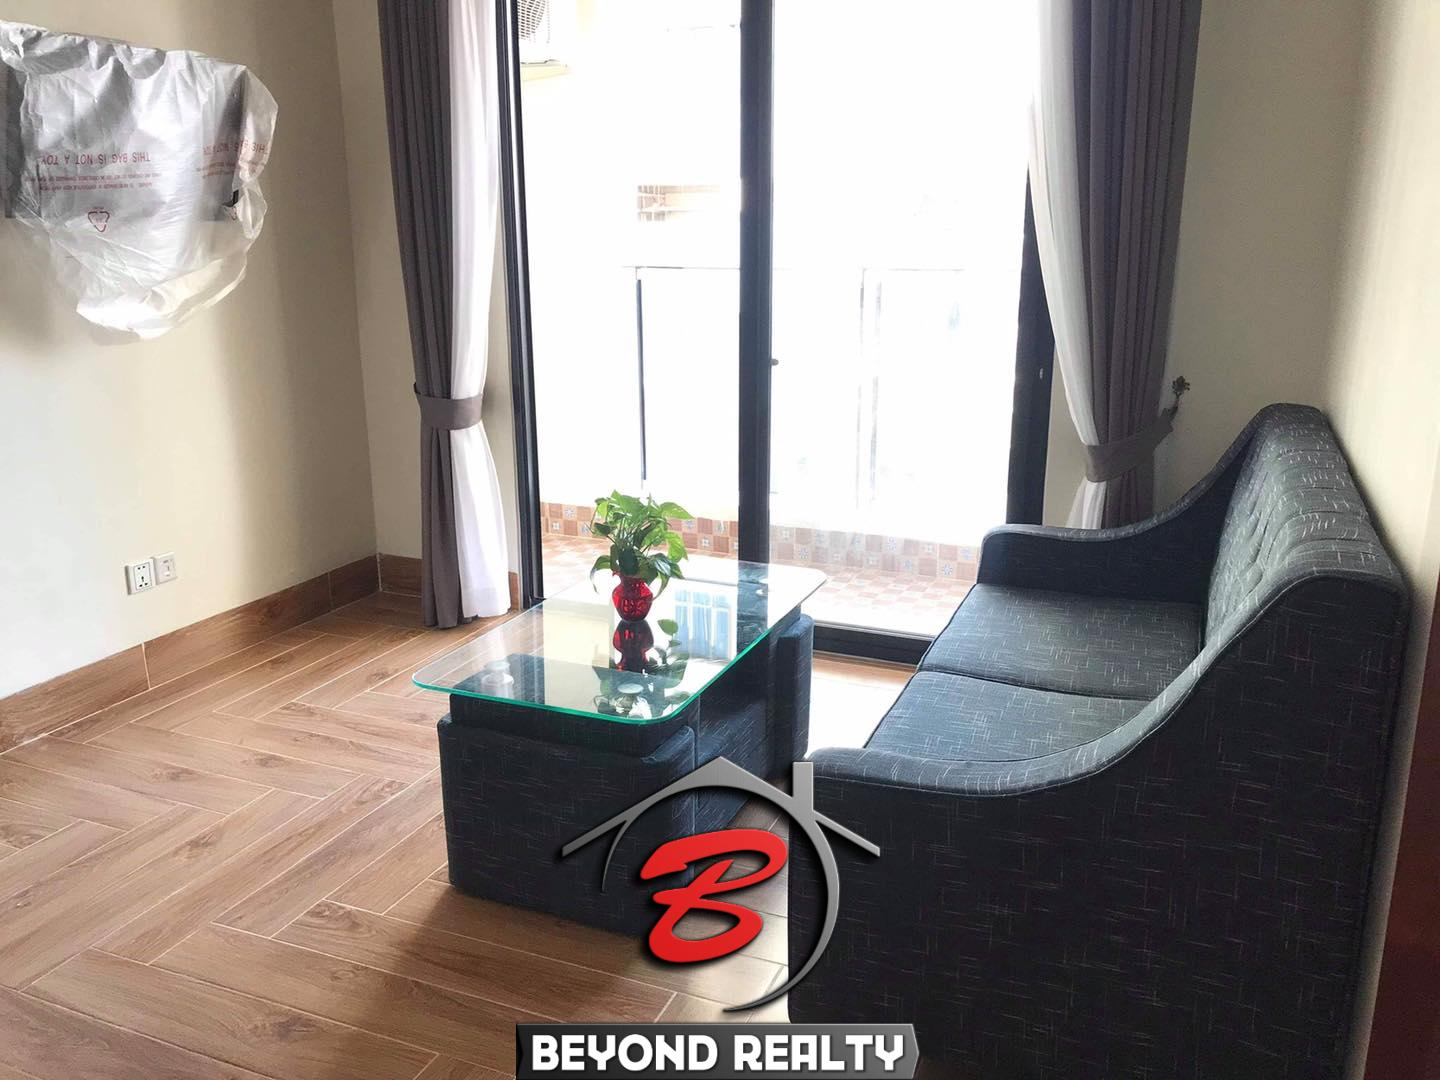 the living room of the 1-bedroom serviced apartment for rent in BKK3 in Phnom Penh Cambodia